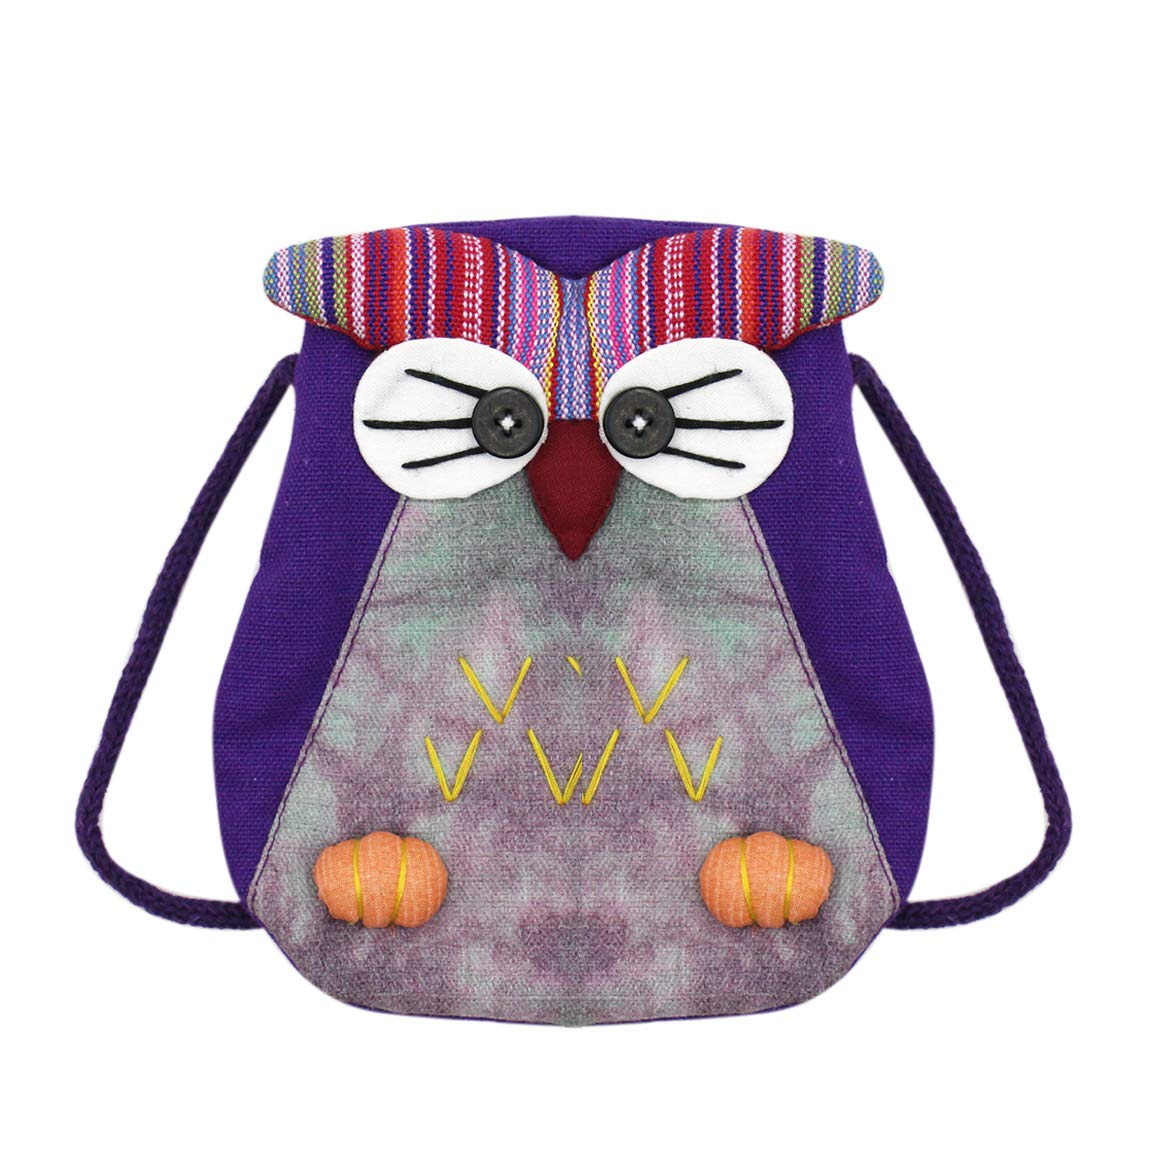 Cute Owl Shaped Zippered Crossbody Coin Purse Mini Handmade Cotton Shoulder Bag for Girls Bolley Joss